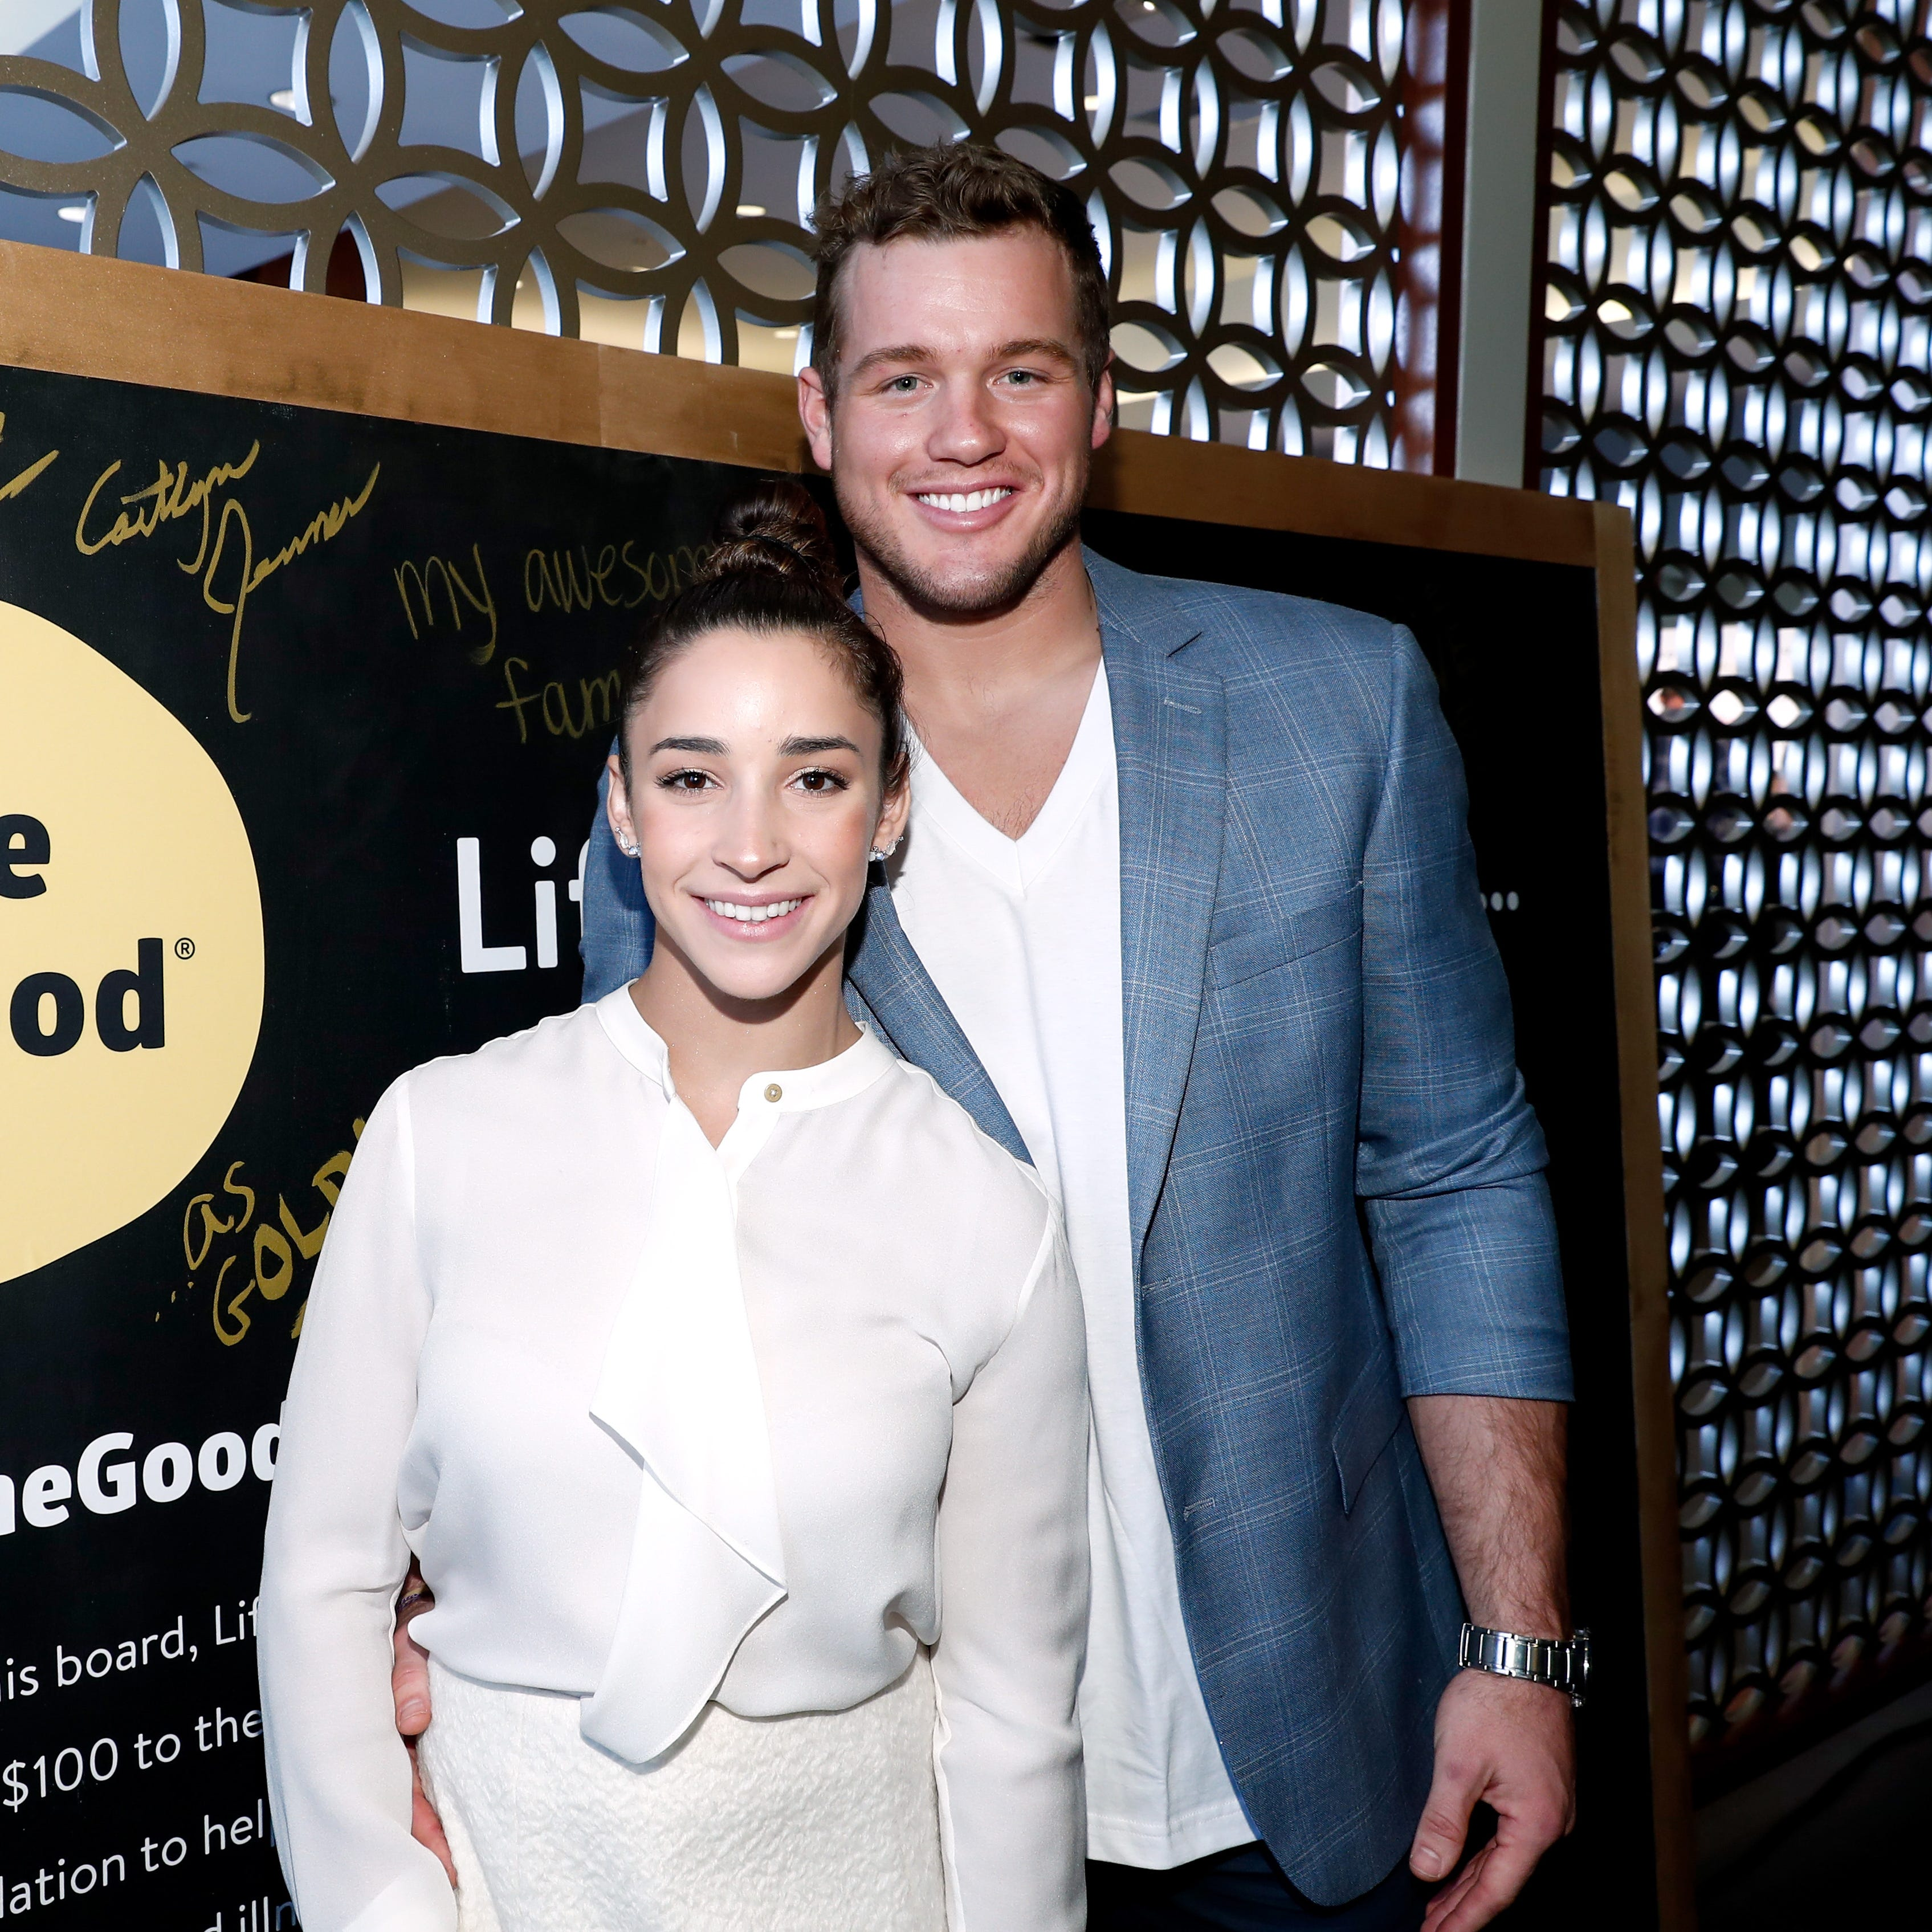 LOS ANGELES, CA - JANUARY 07:  NFL player Colton Underwood and Olympic athlete Aly Raisman attend Life is Good at GOLD MEETS GOLDEN Event at Equinox on January 7, 2017 in Los Angeles, California.  (Photo by Rich Polk/Getty Images for Life is Good) ORG XMIT: 691496203 ORIG FILE ID: 631159766